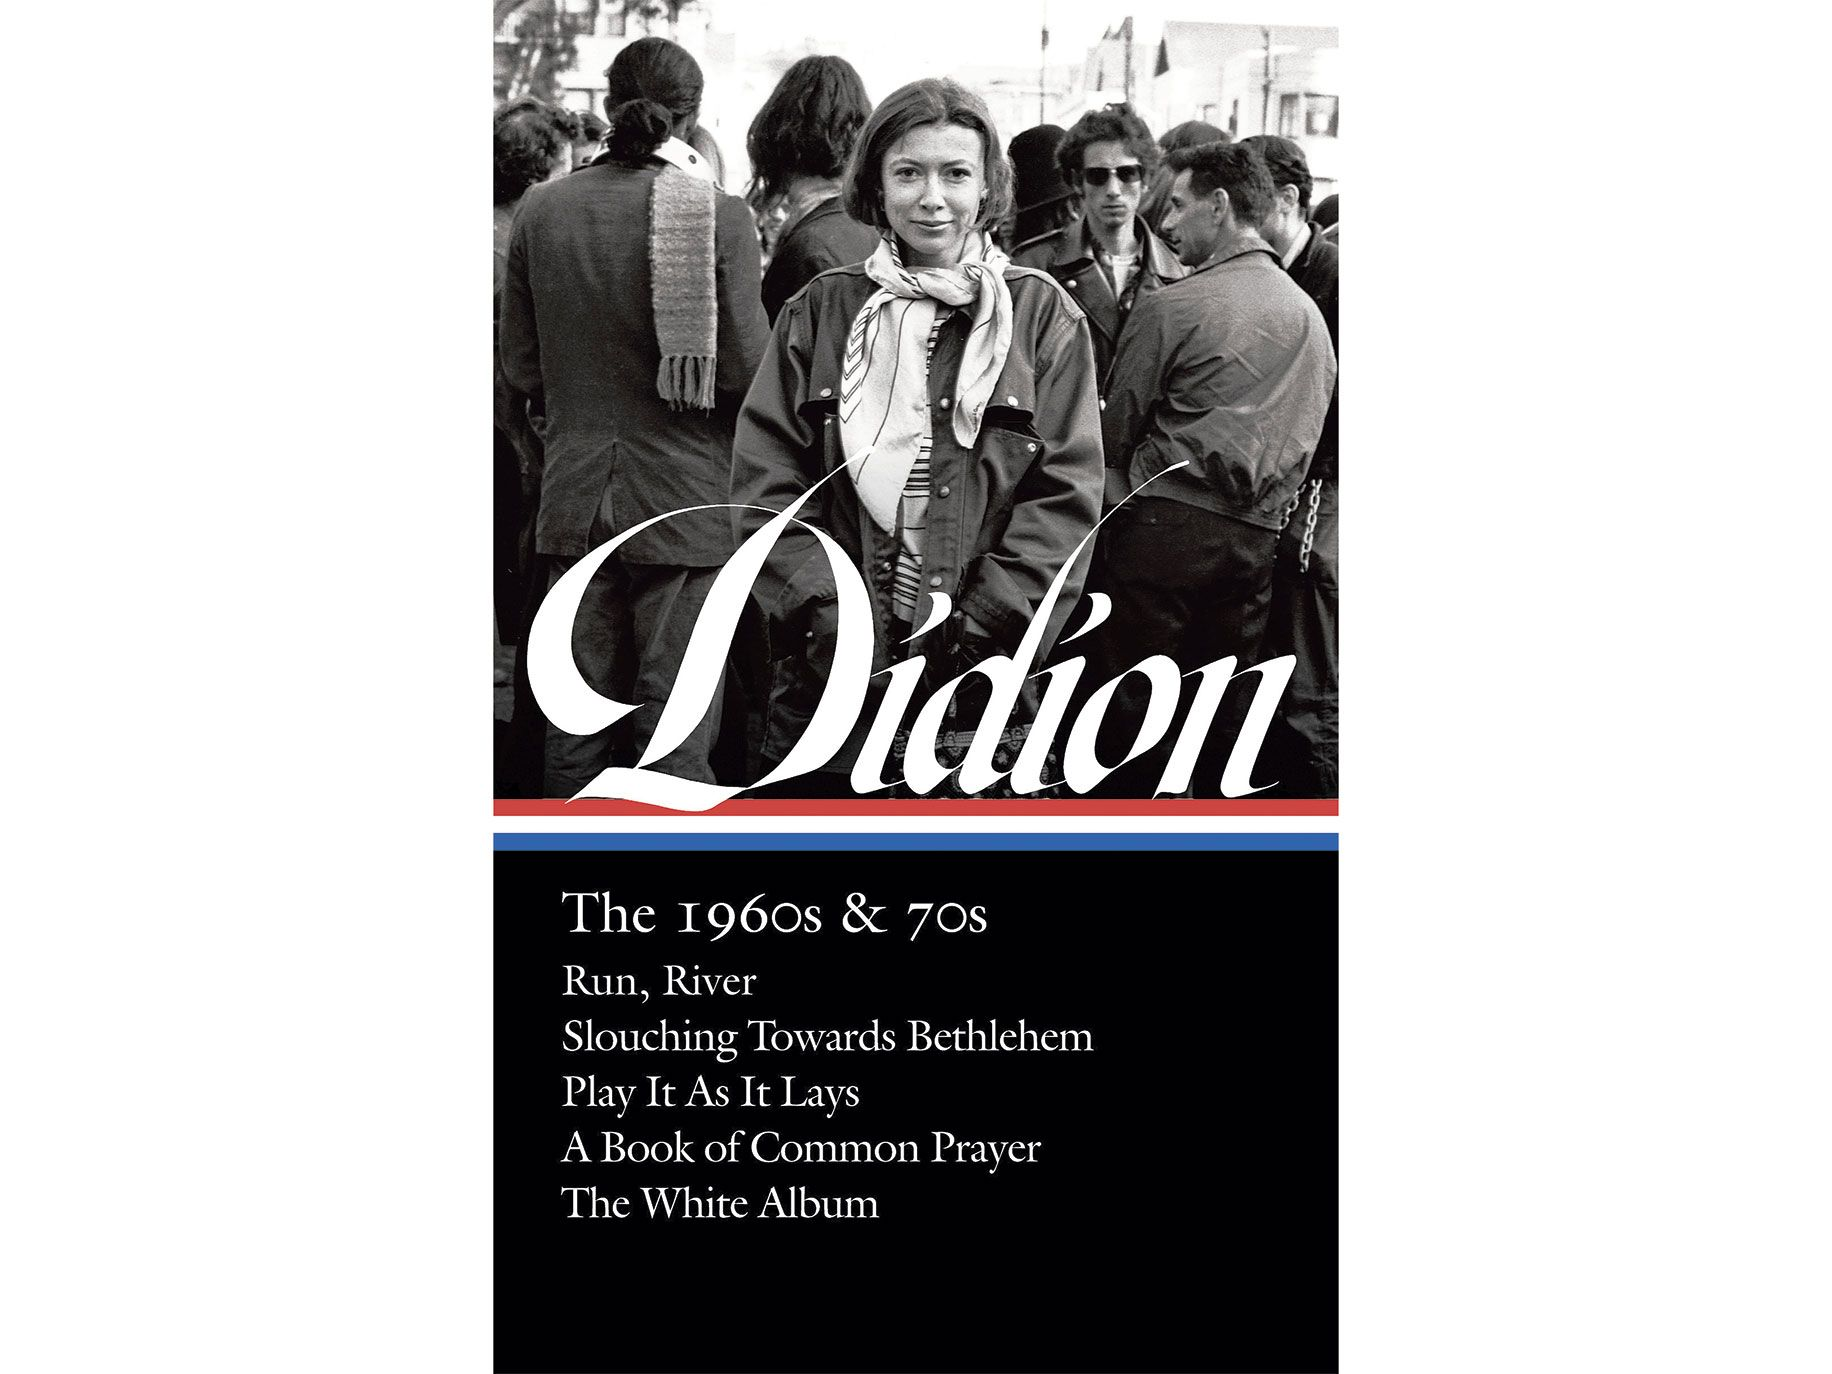 Joan Didion: The 1960s & 70s by Joan Didion, Library of America, 950 pages, $39.95